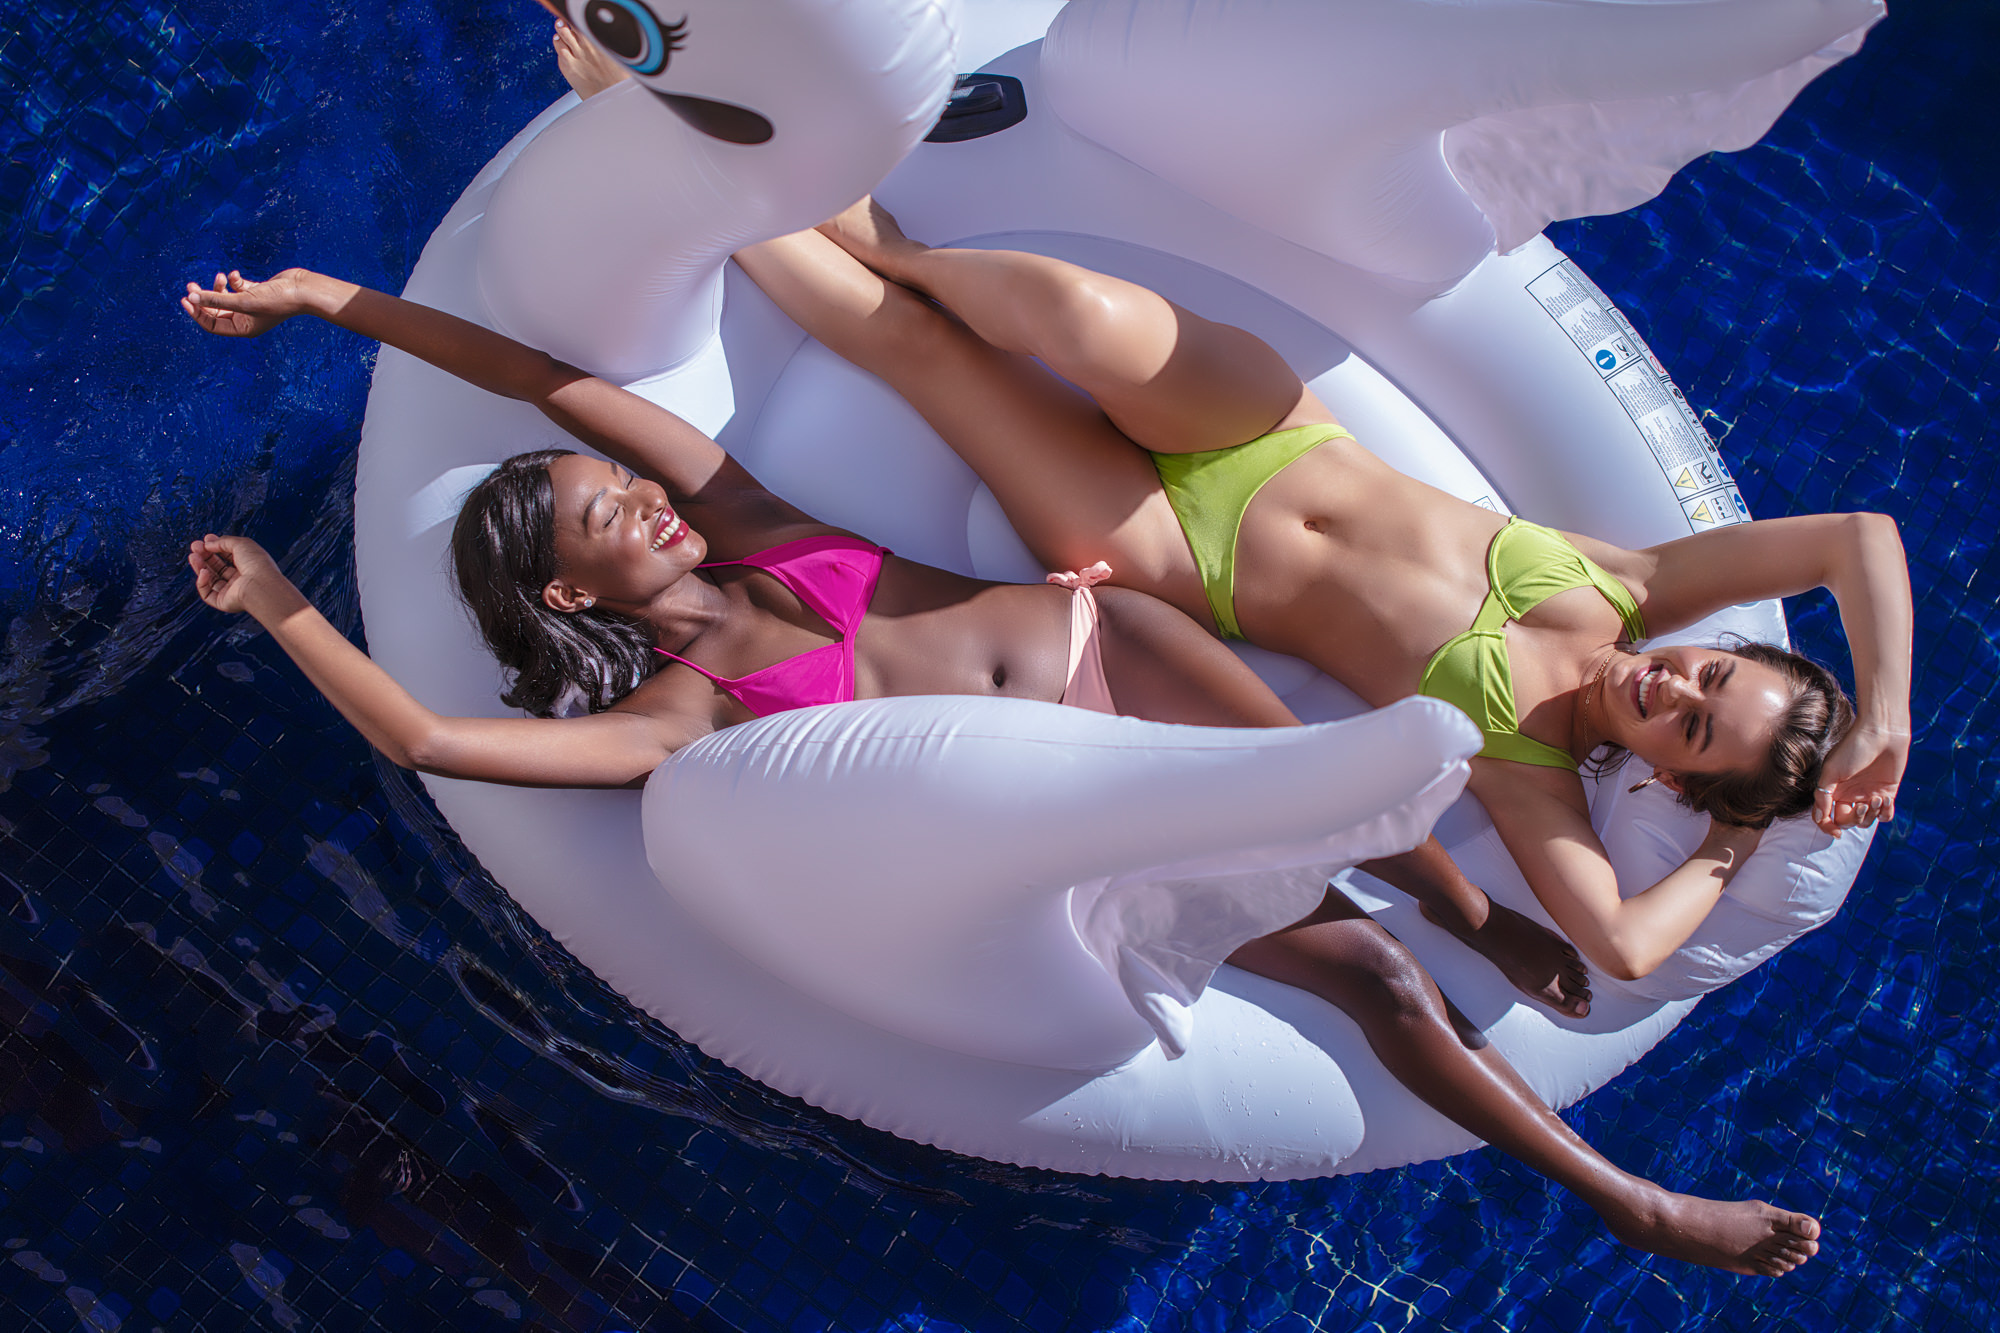 Image of girl friends having fun in the Southern Sun The Cullinan Hotel pool for Tsogo Sun's Image Library & Content Library by Michelle Wastie Photography